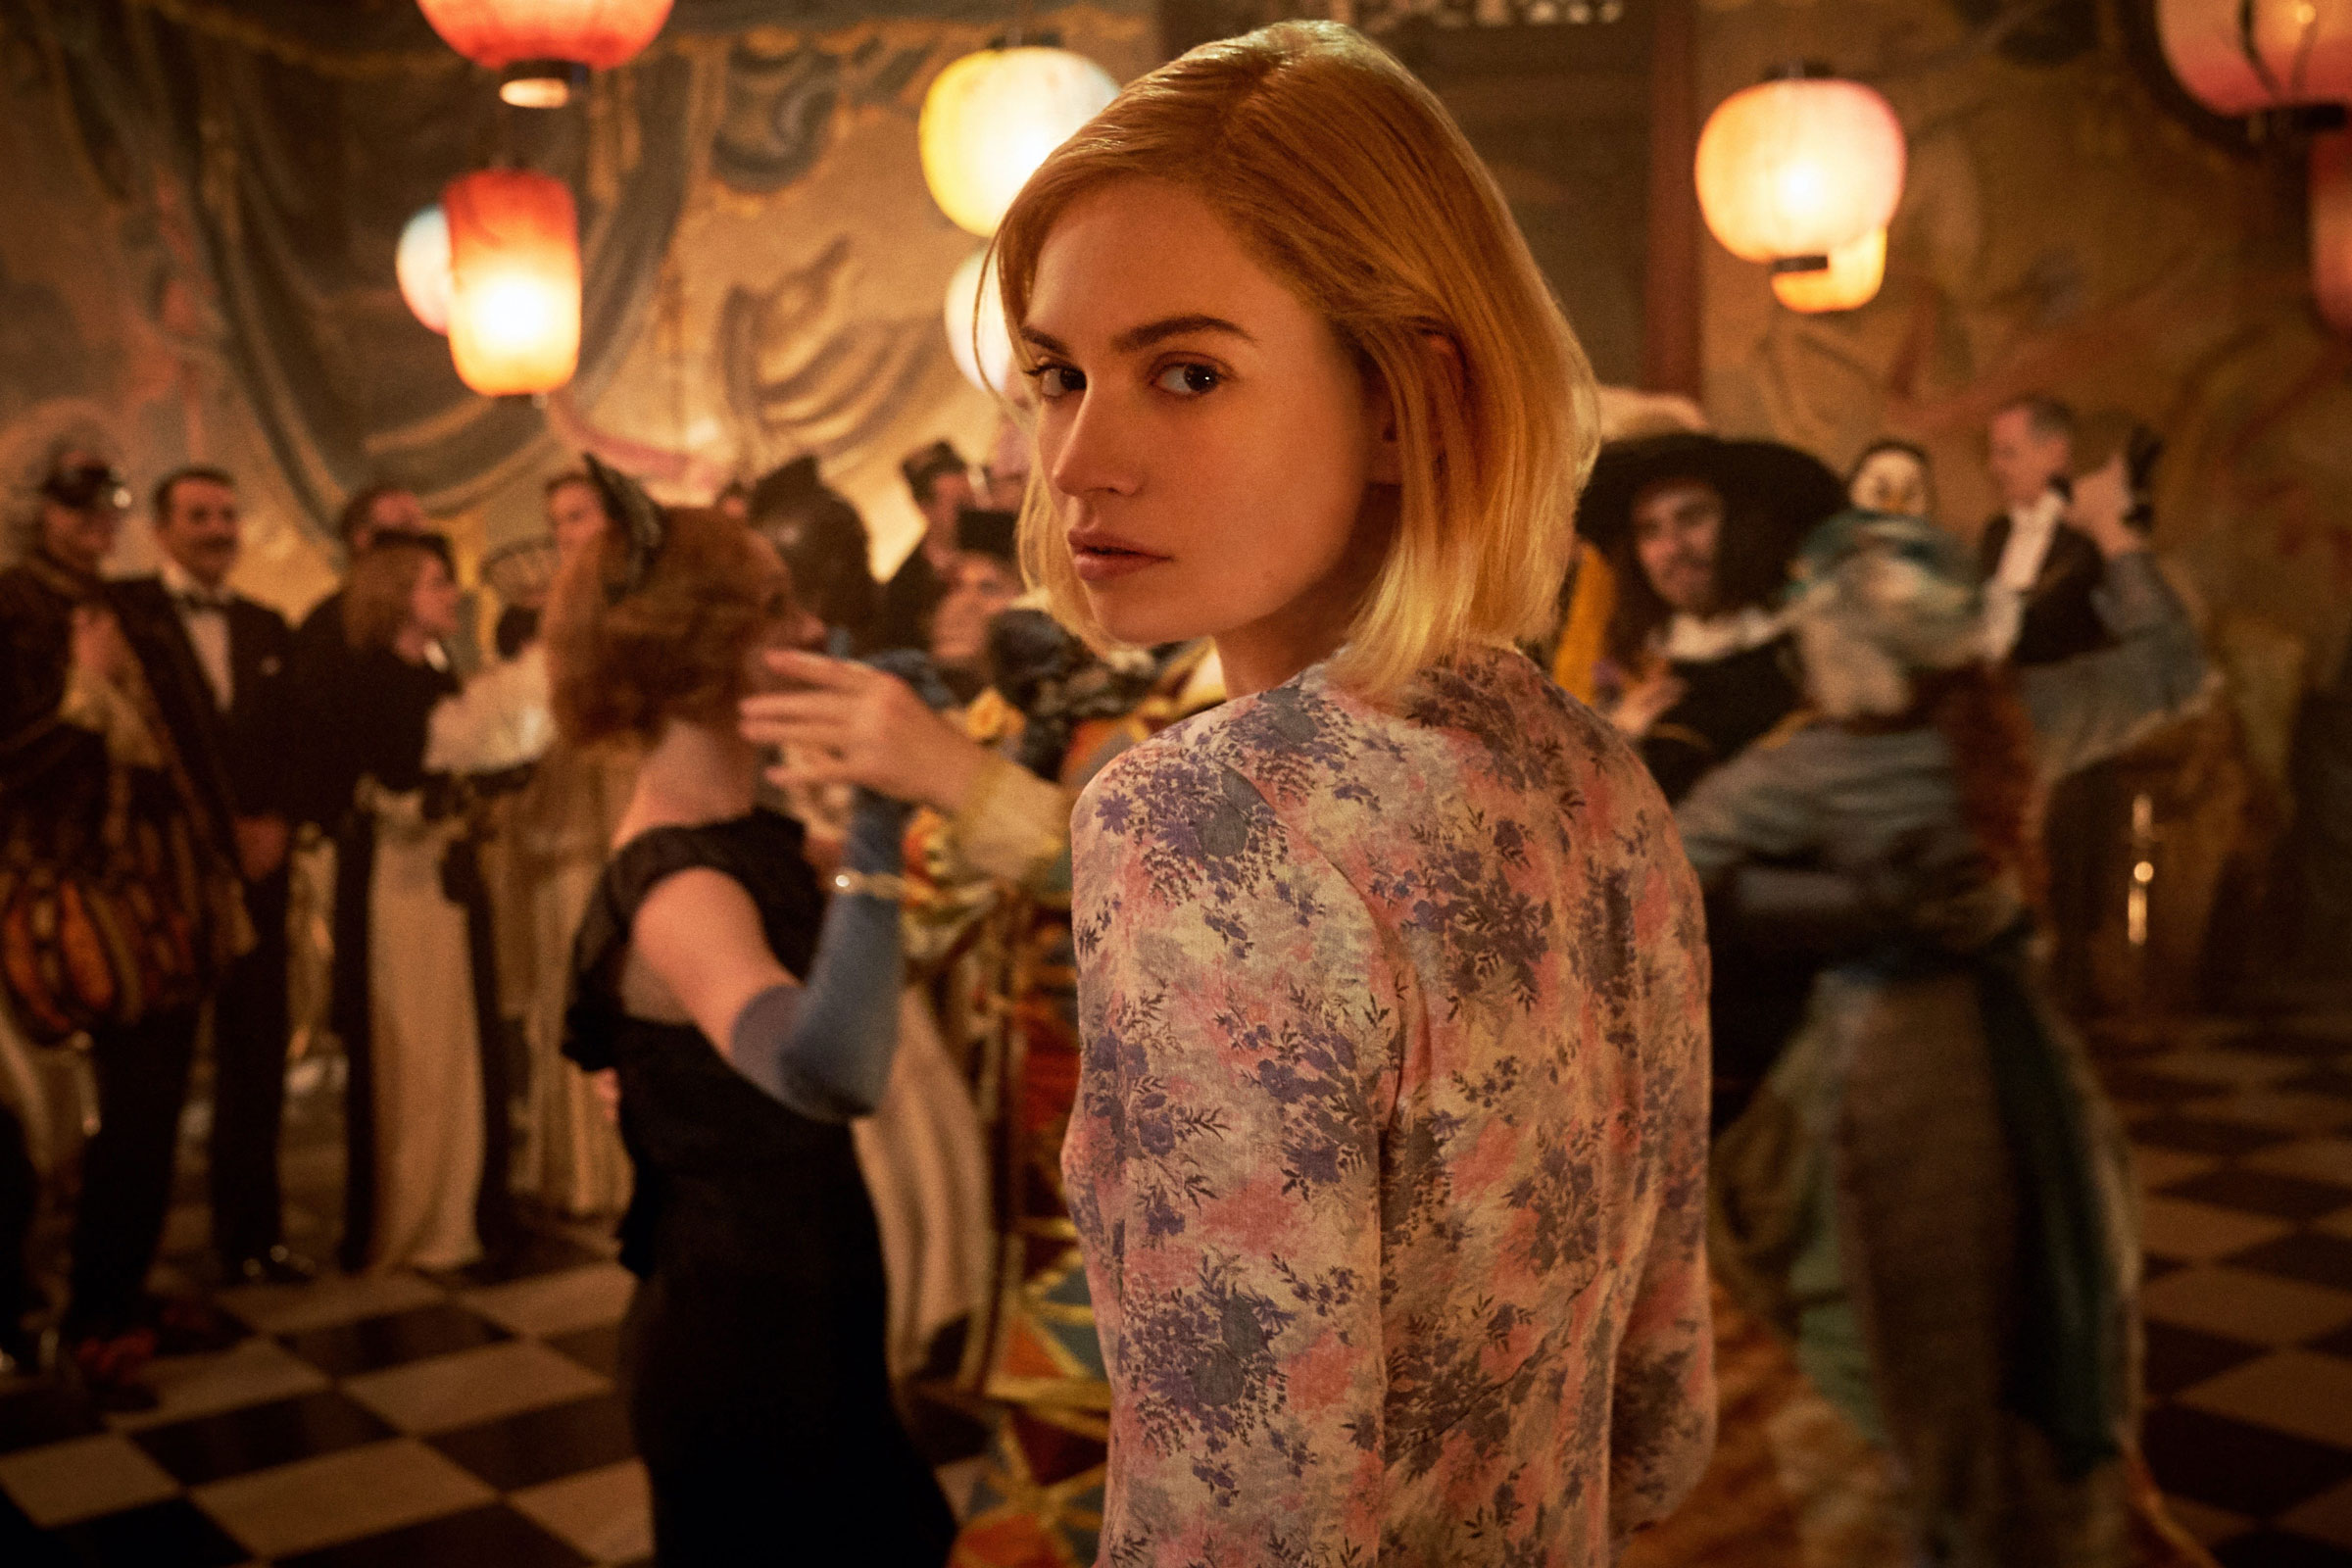 Lily James plays Mrs. de Winter, a woman with shoulder-length blond hair looking over her shoulder, in Rebecca